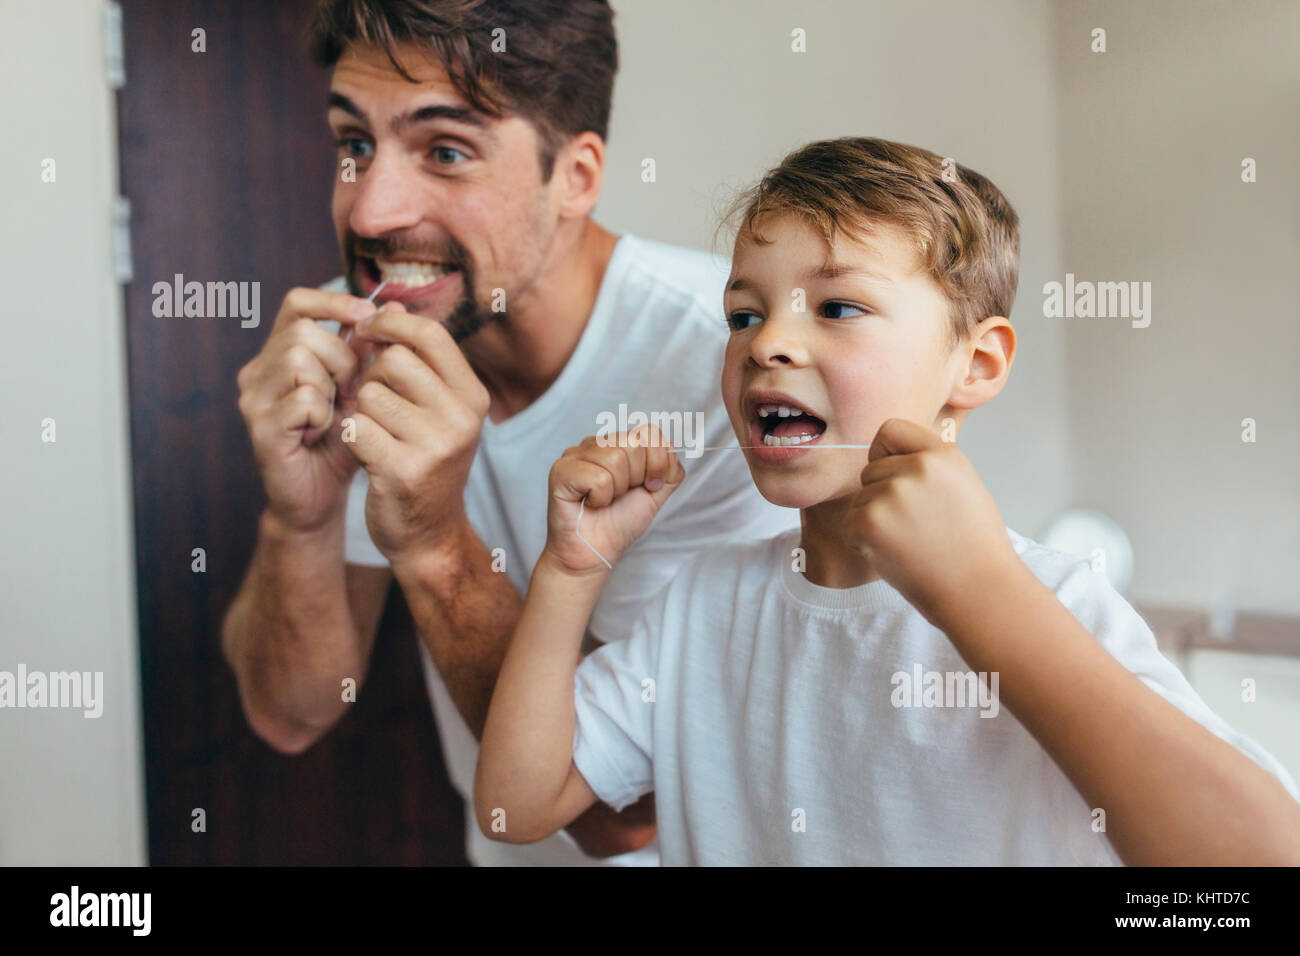 Little boy with his father in bathroom cleaning teeth with dental floss. Both looking in mirror and brushing teeth. - Stock Image